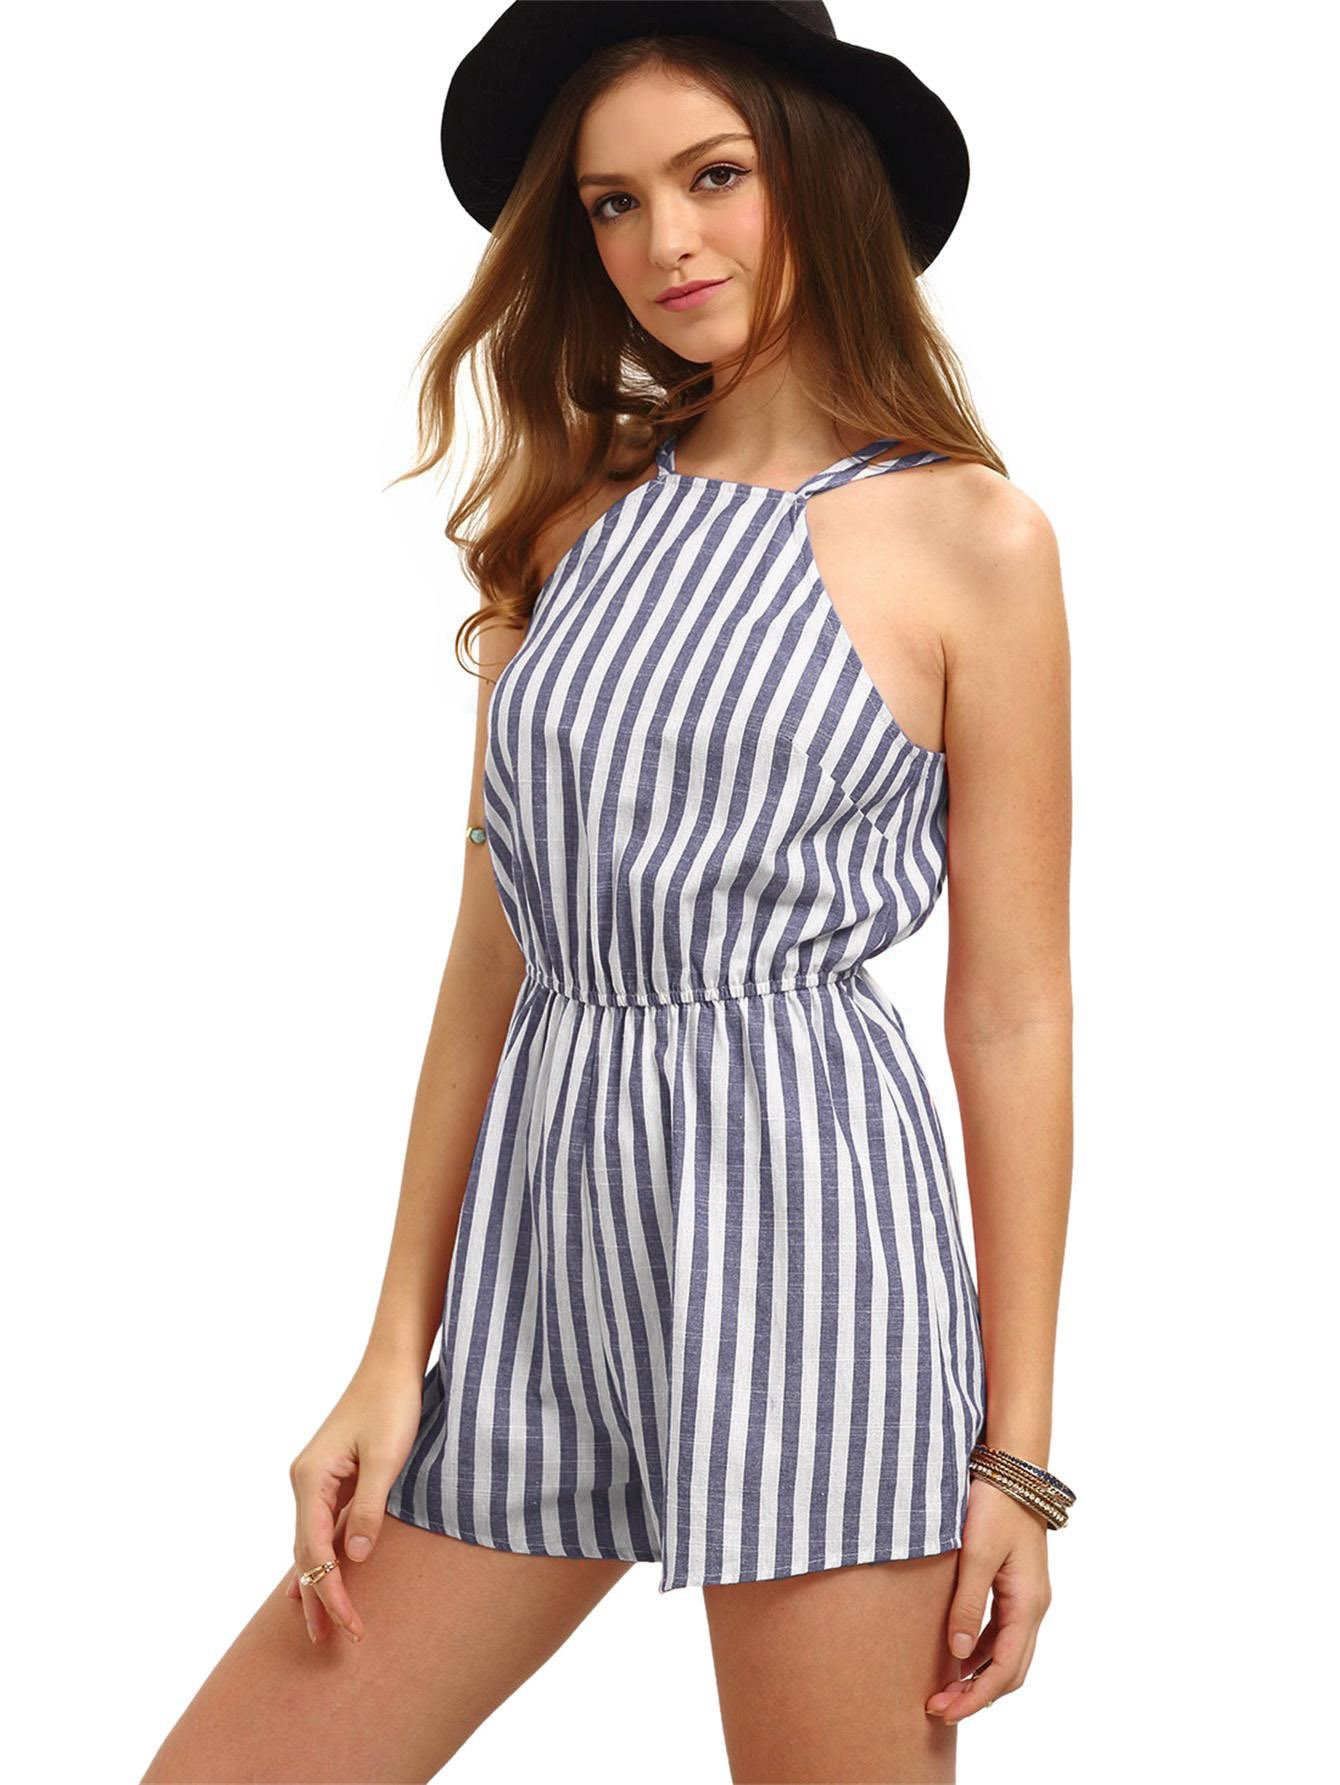 Romwe Women's Casual Striped Sleeveless Halter Sexy Short Romper Jumpsuit Navy XS by Romwe (Image #1)